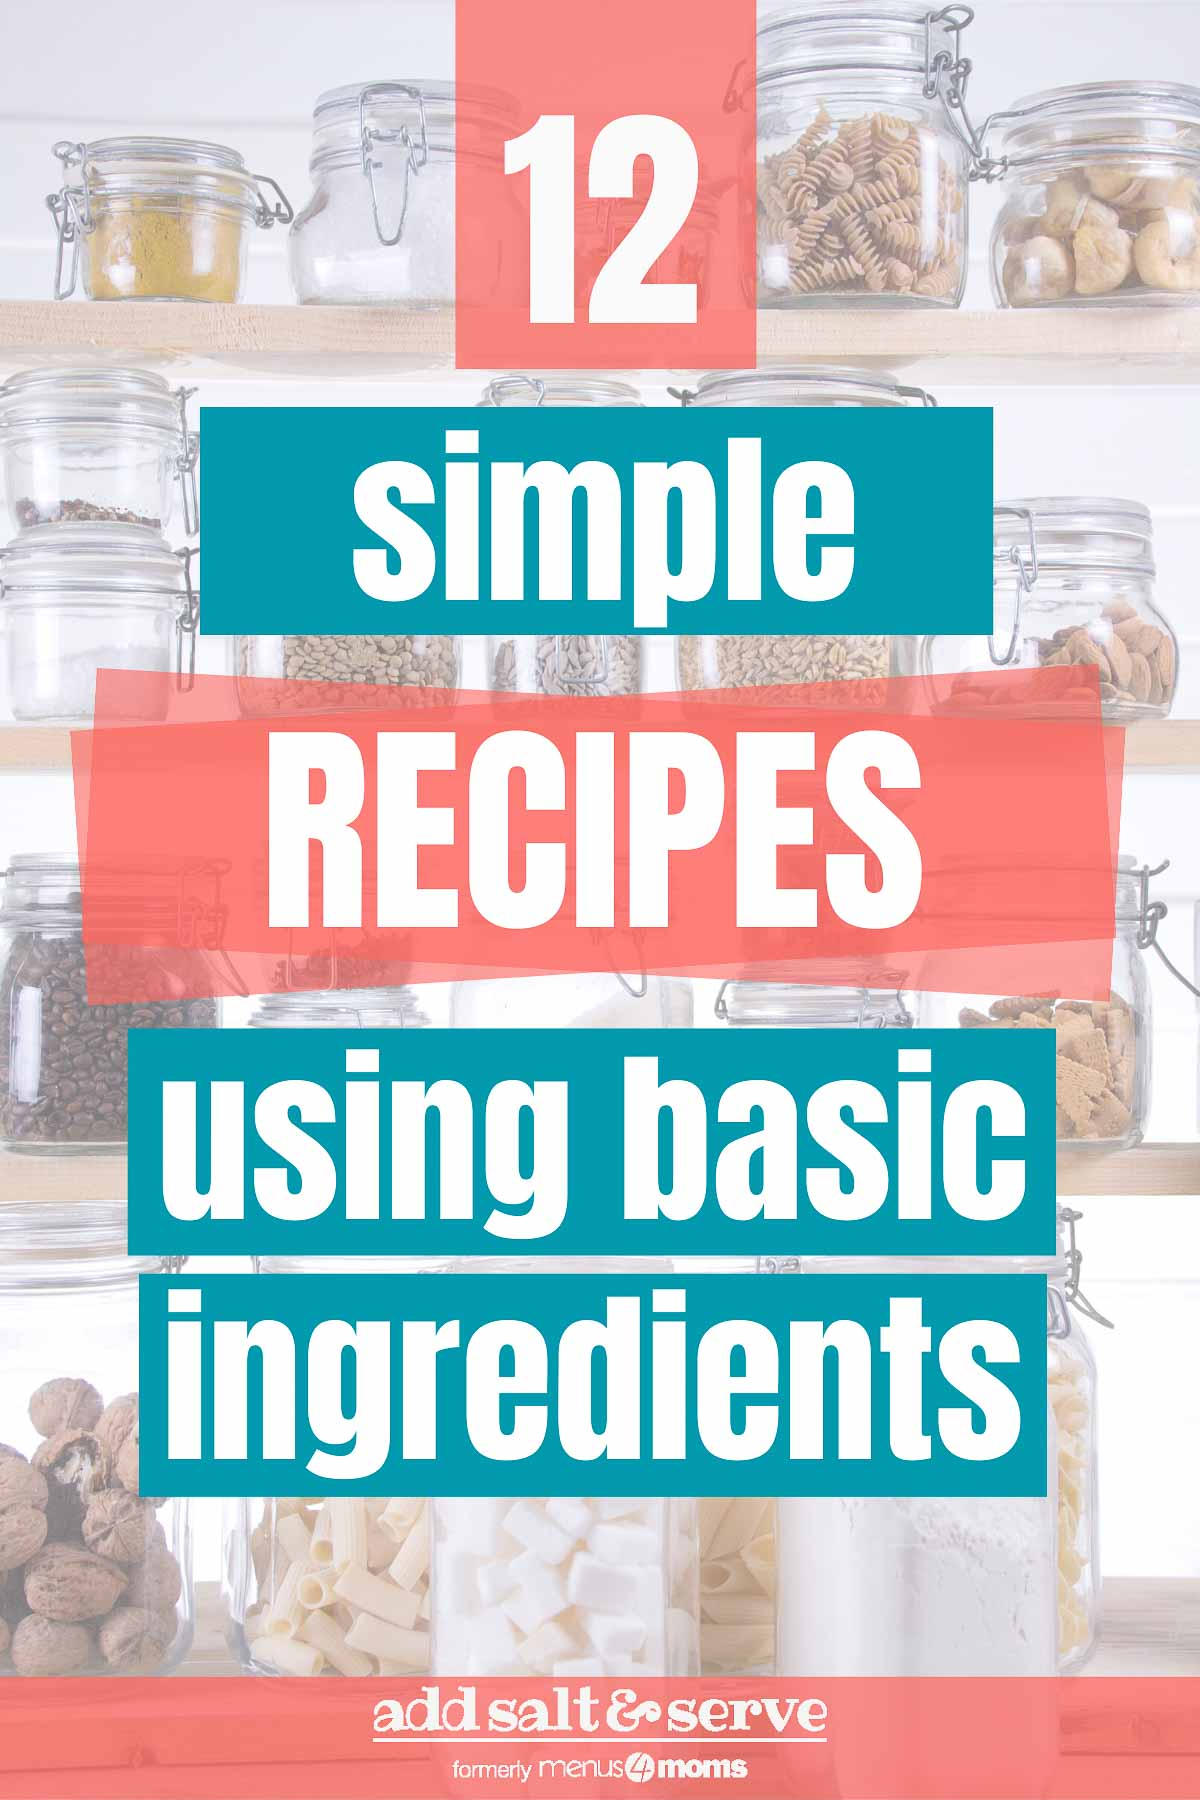 background image of food in jars with text 12 Simple Recipes using basic ingredients - Add Salt & Serve